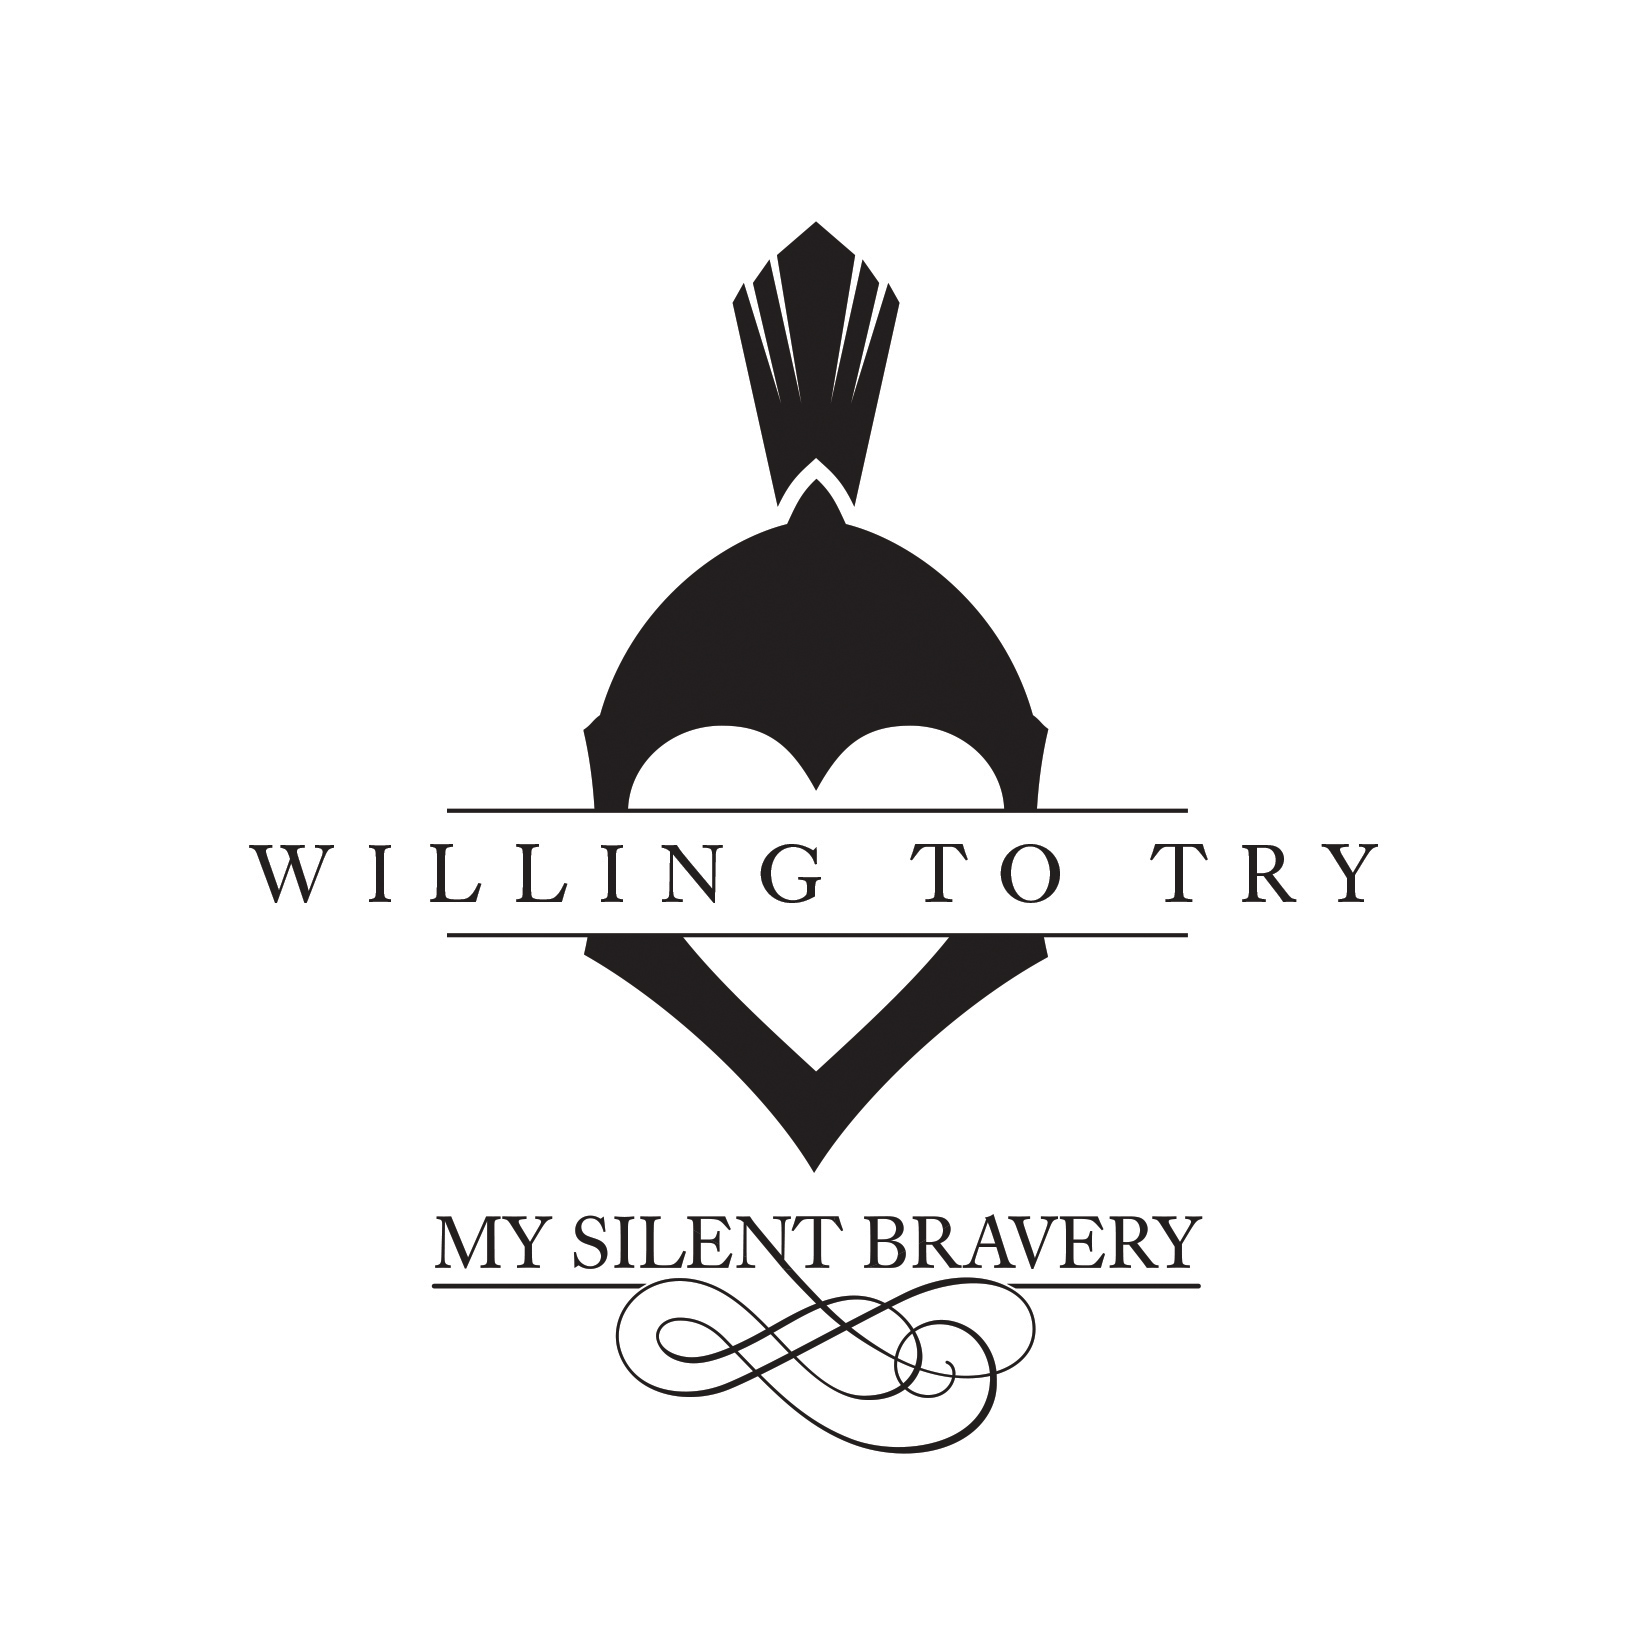 Music | My Silent Bravery - Listen to MSB's Inspirational